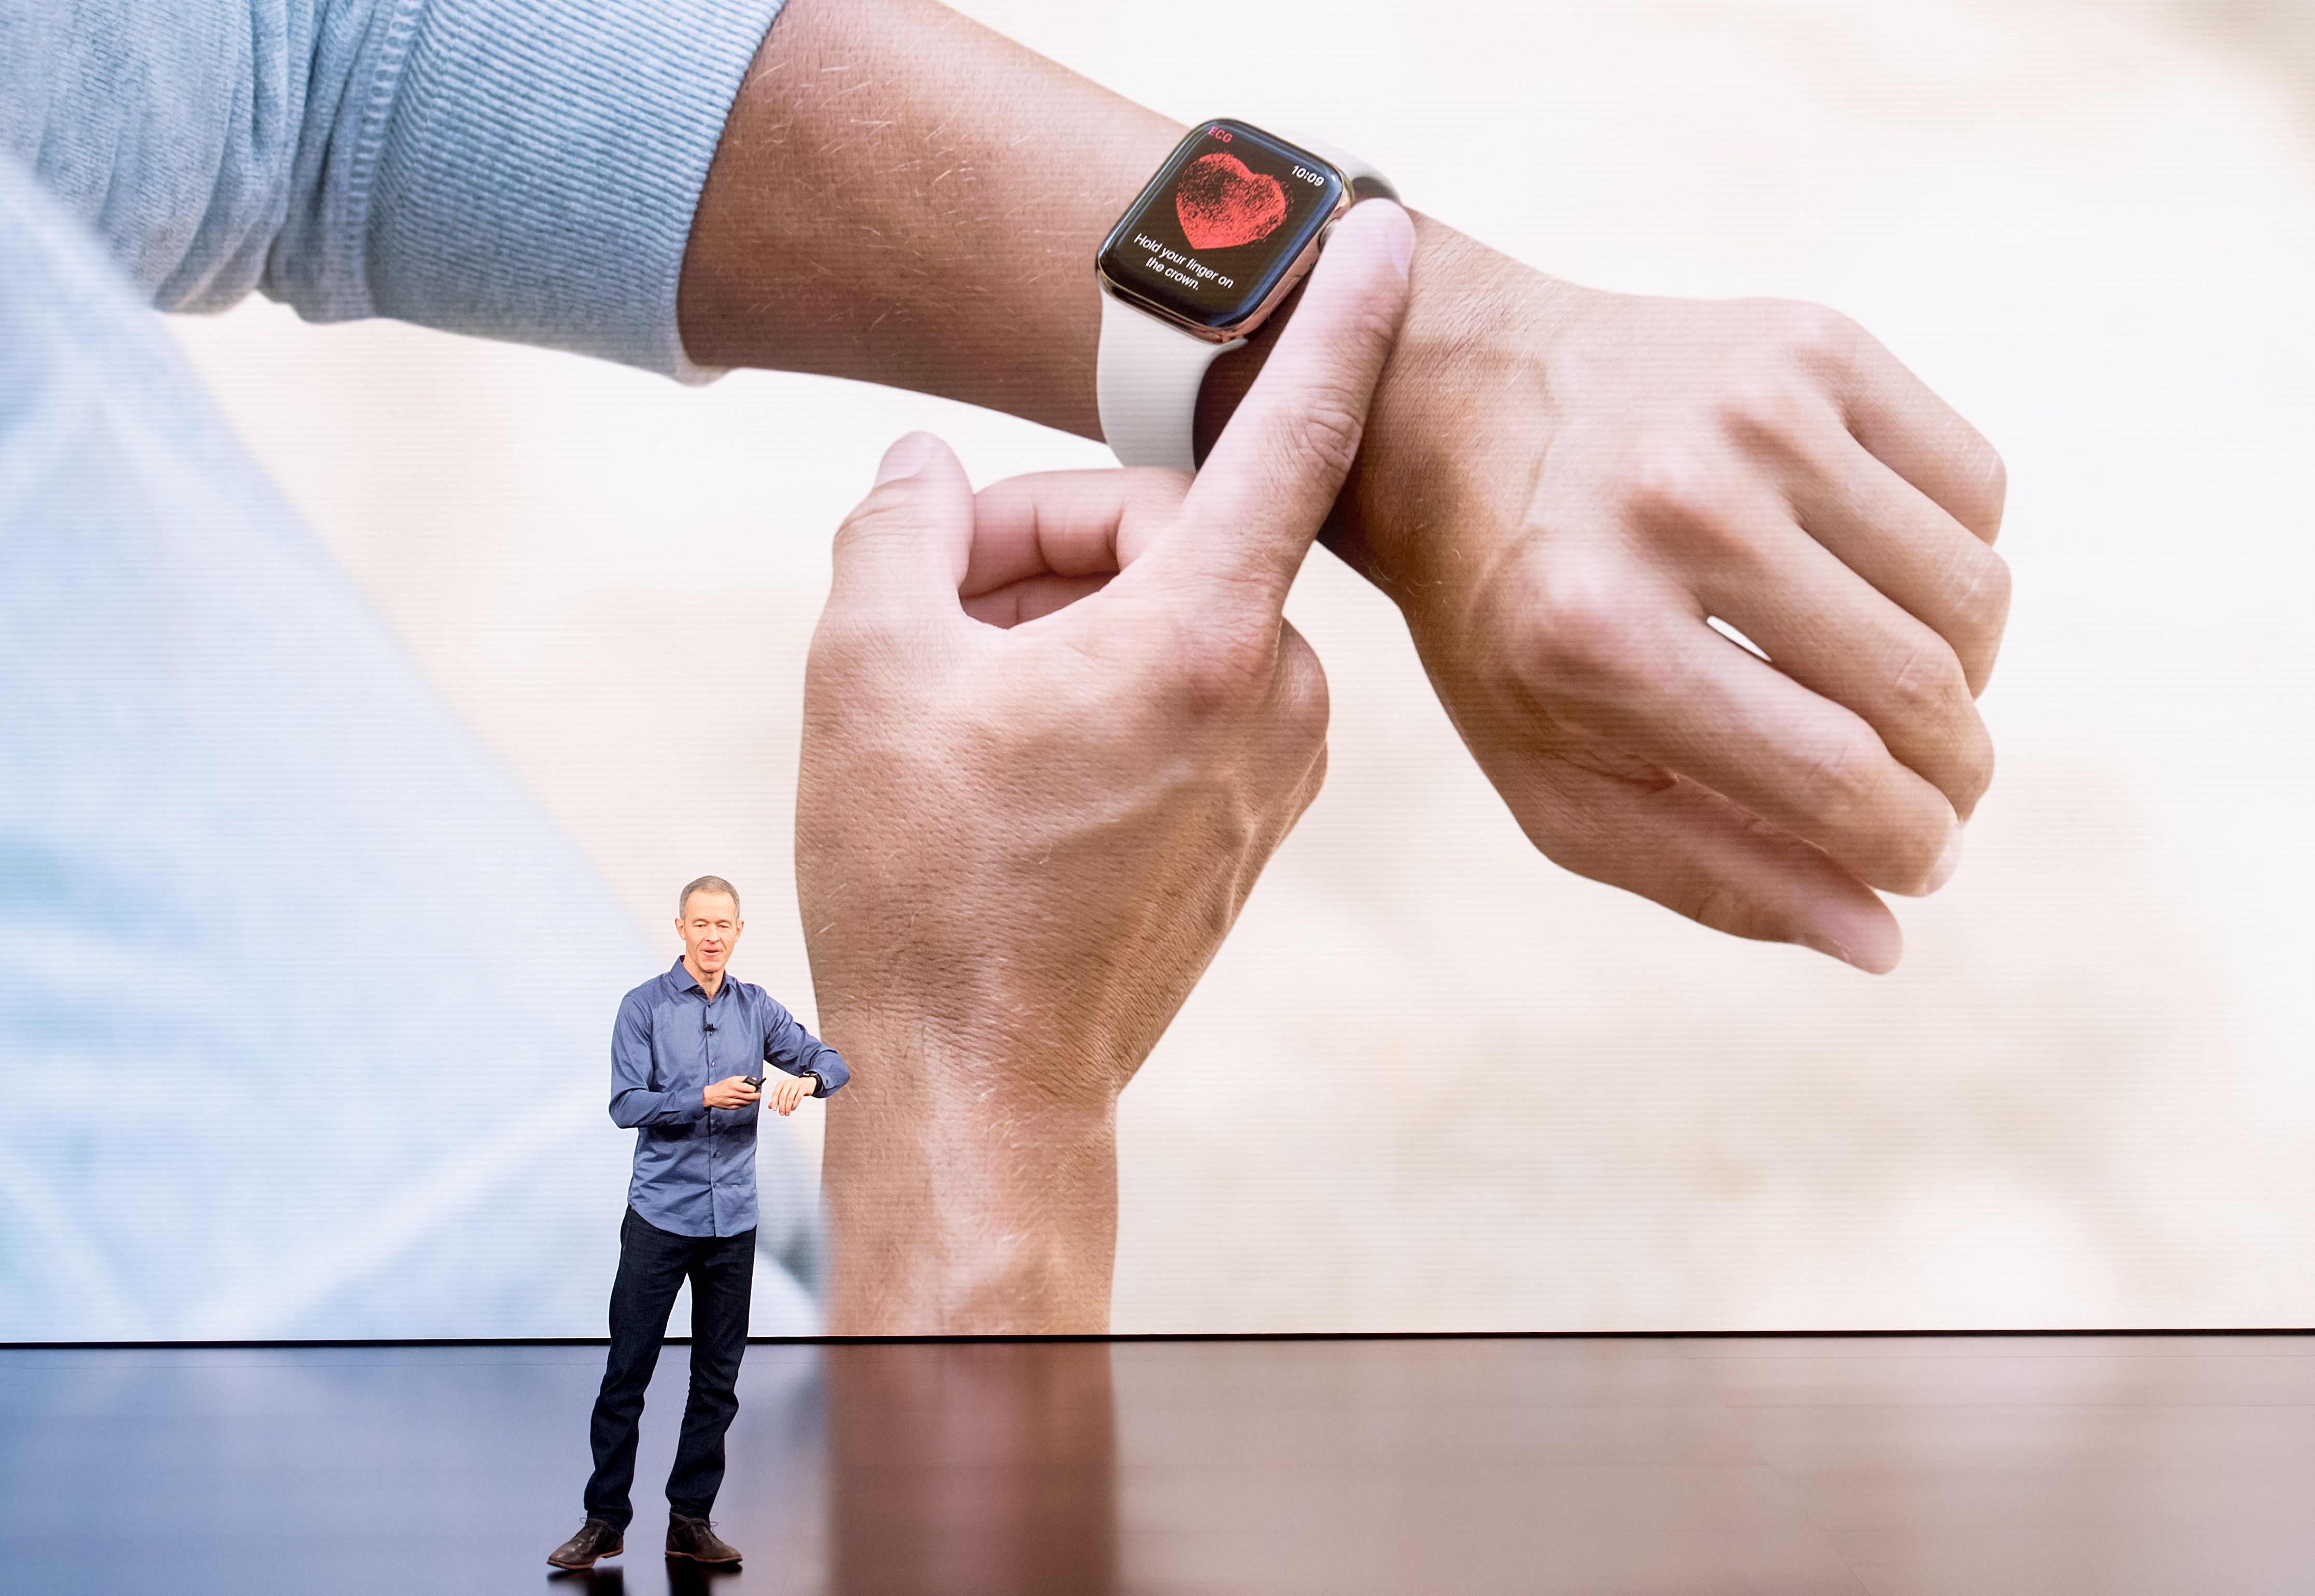 What the New Apple Watch Can Do for Your Heart